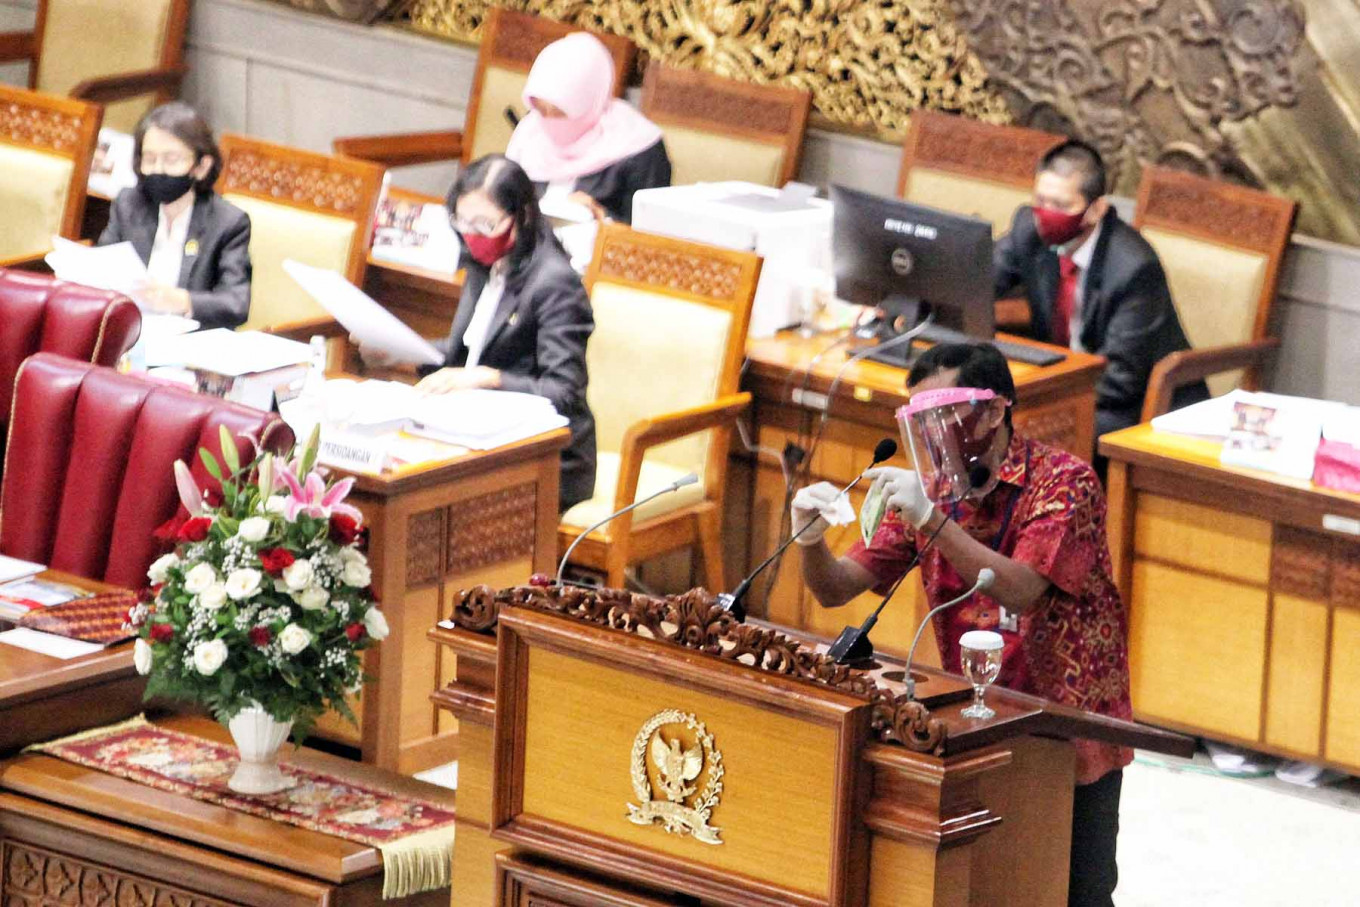 A staff member disinfects a microphone before a House of Representatives plenary session in Central Jakarta on September. 1. 2020. The session heard general views from party members on the draft 2021 state budget and endorsed a revision of the Constitutional Court Law. JP/Seto Wardhana